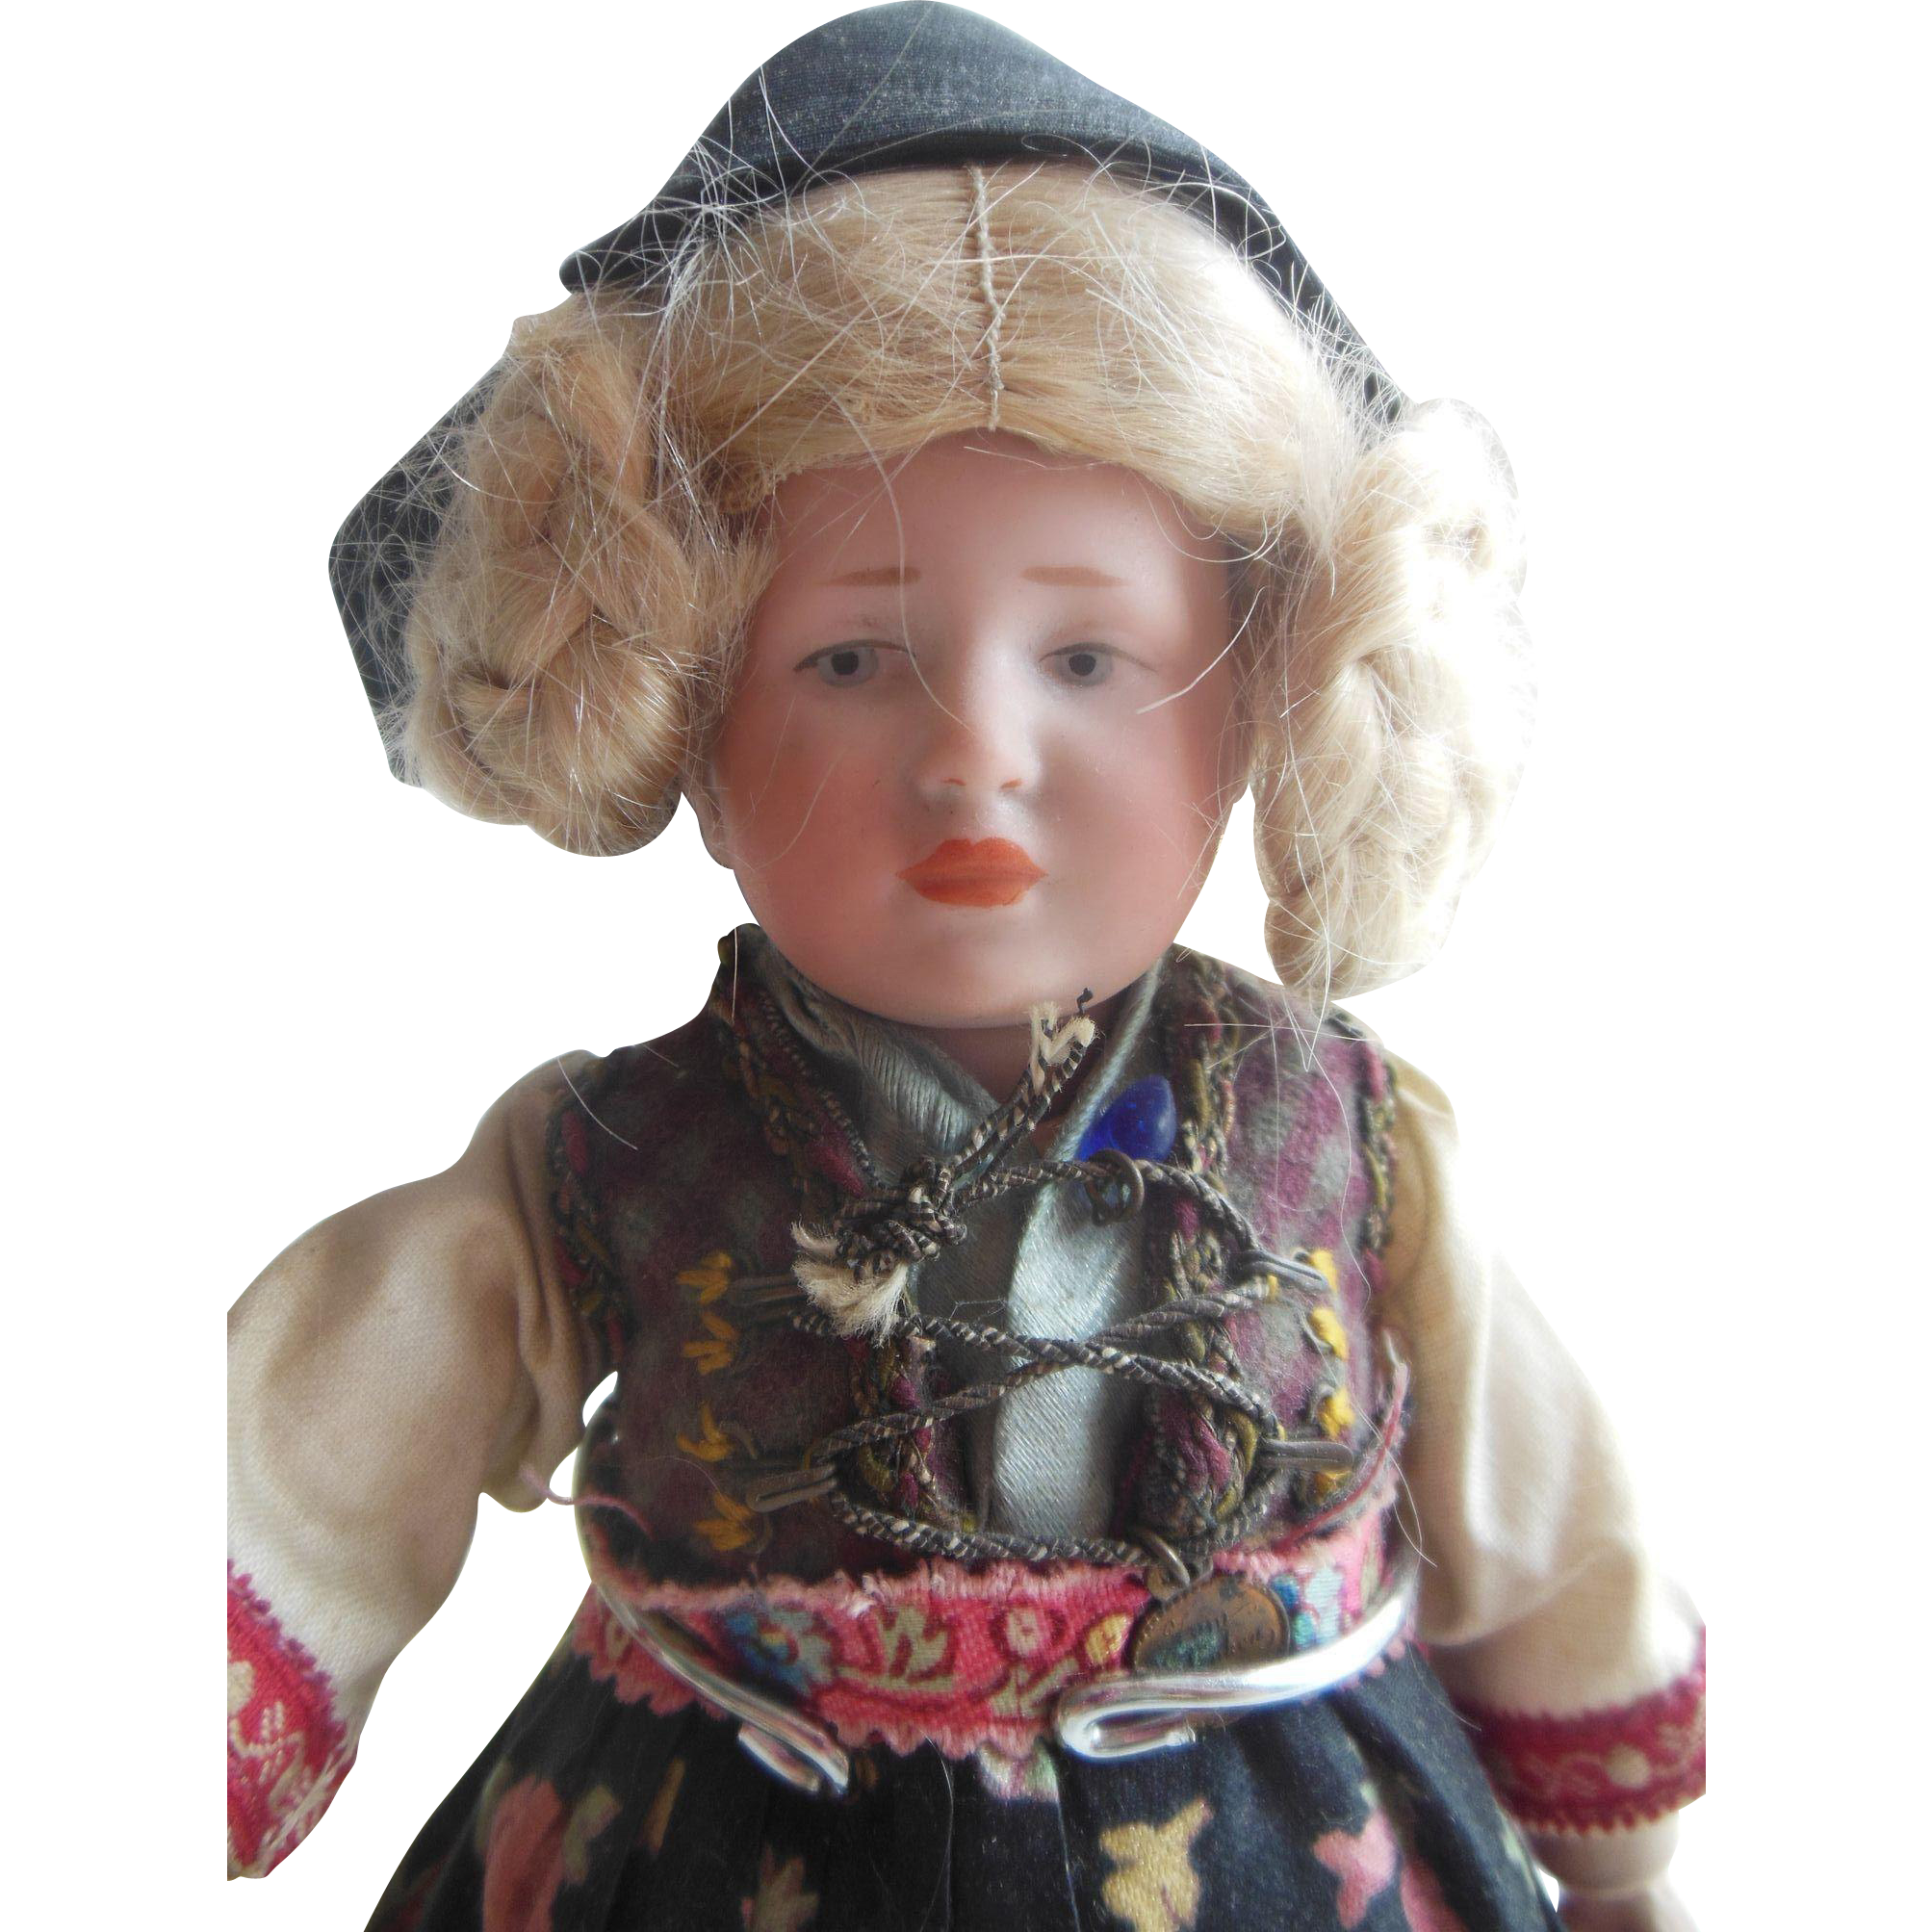 Tiny fully articulated K&R 101 Marie doll 7 1/2 inch